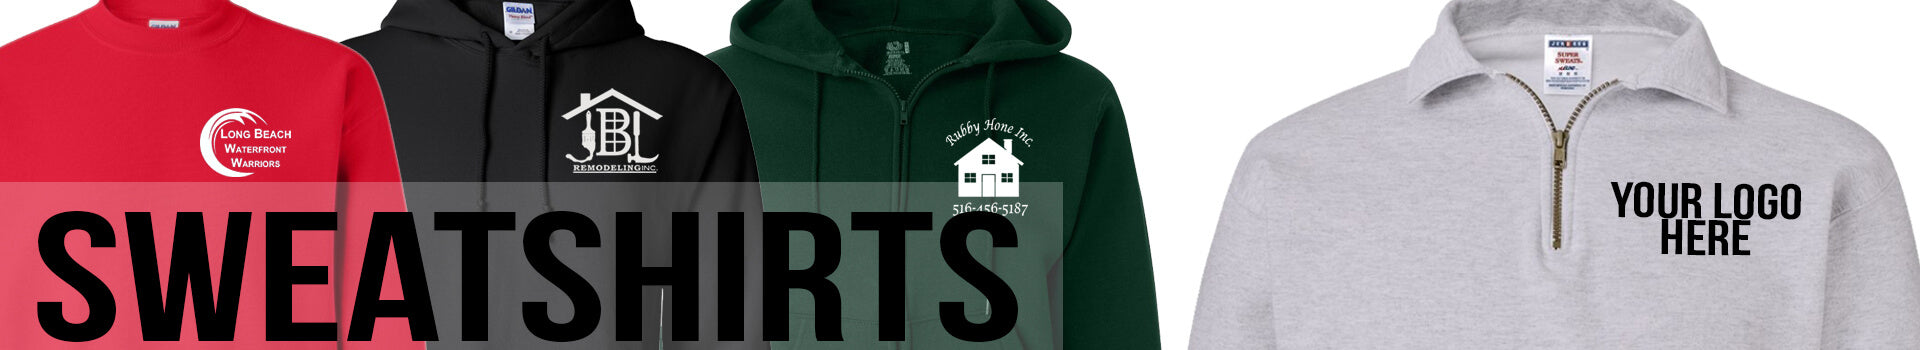 53364d5c9 Custom Embroidery Services – Business Logo Apparel